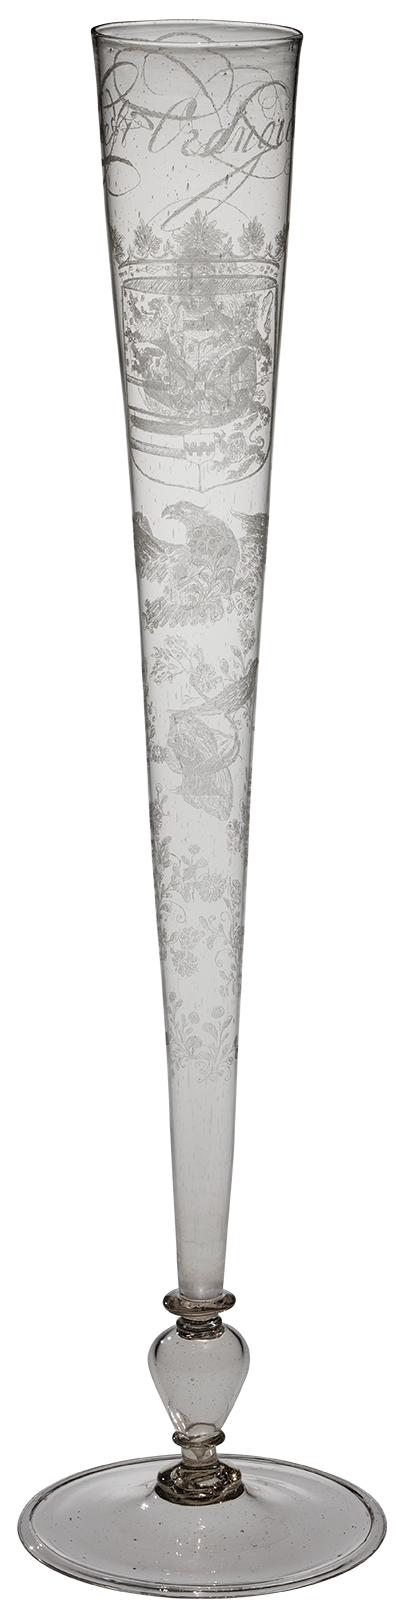 tall and thin conical glass with etched design